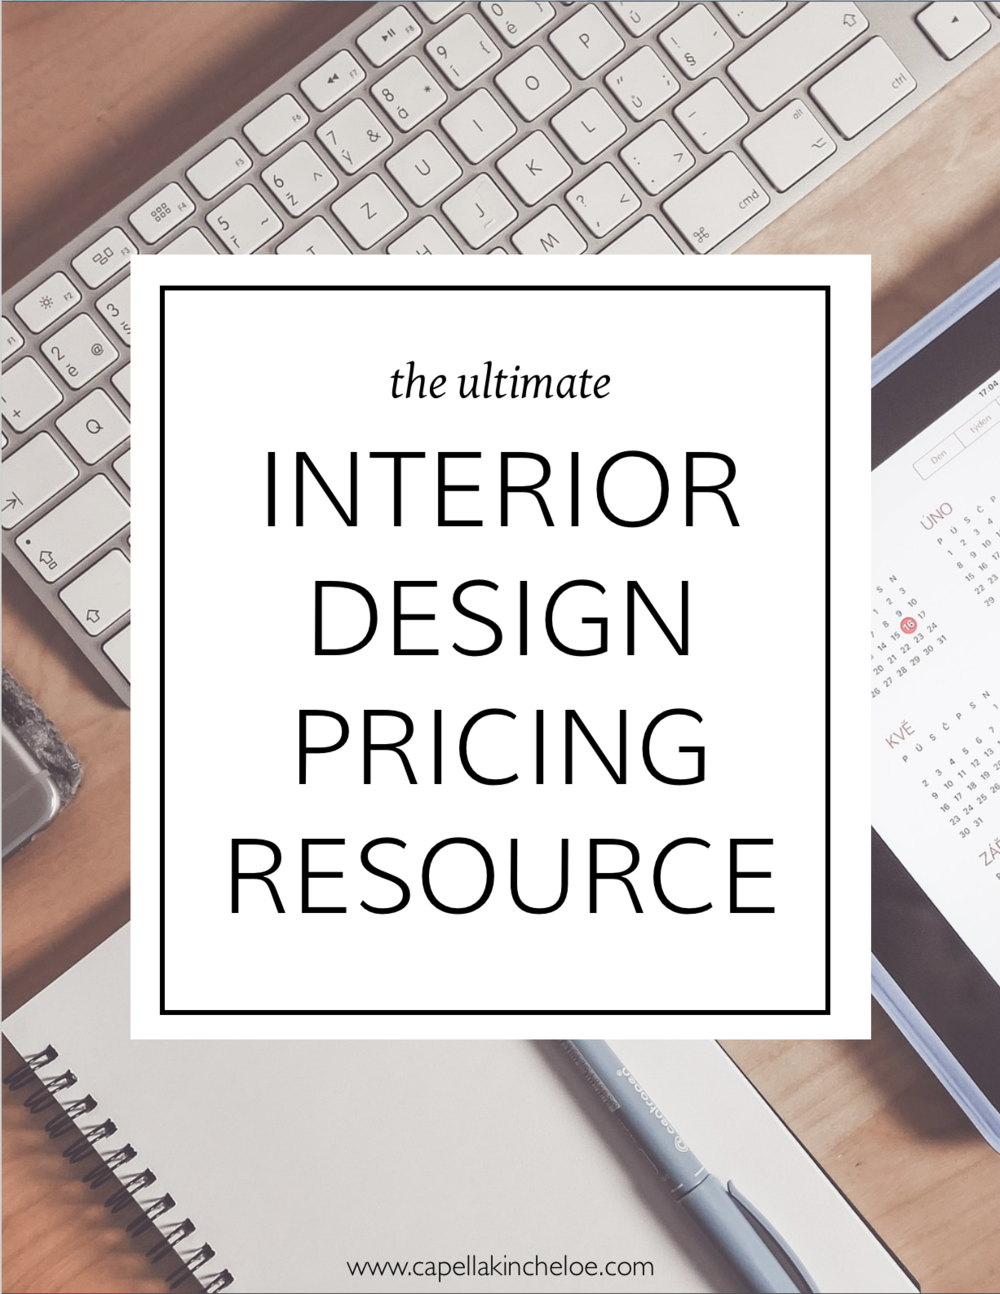 Superb All The Articles You Ever Need To Price Interior Design Services.